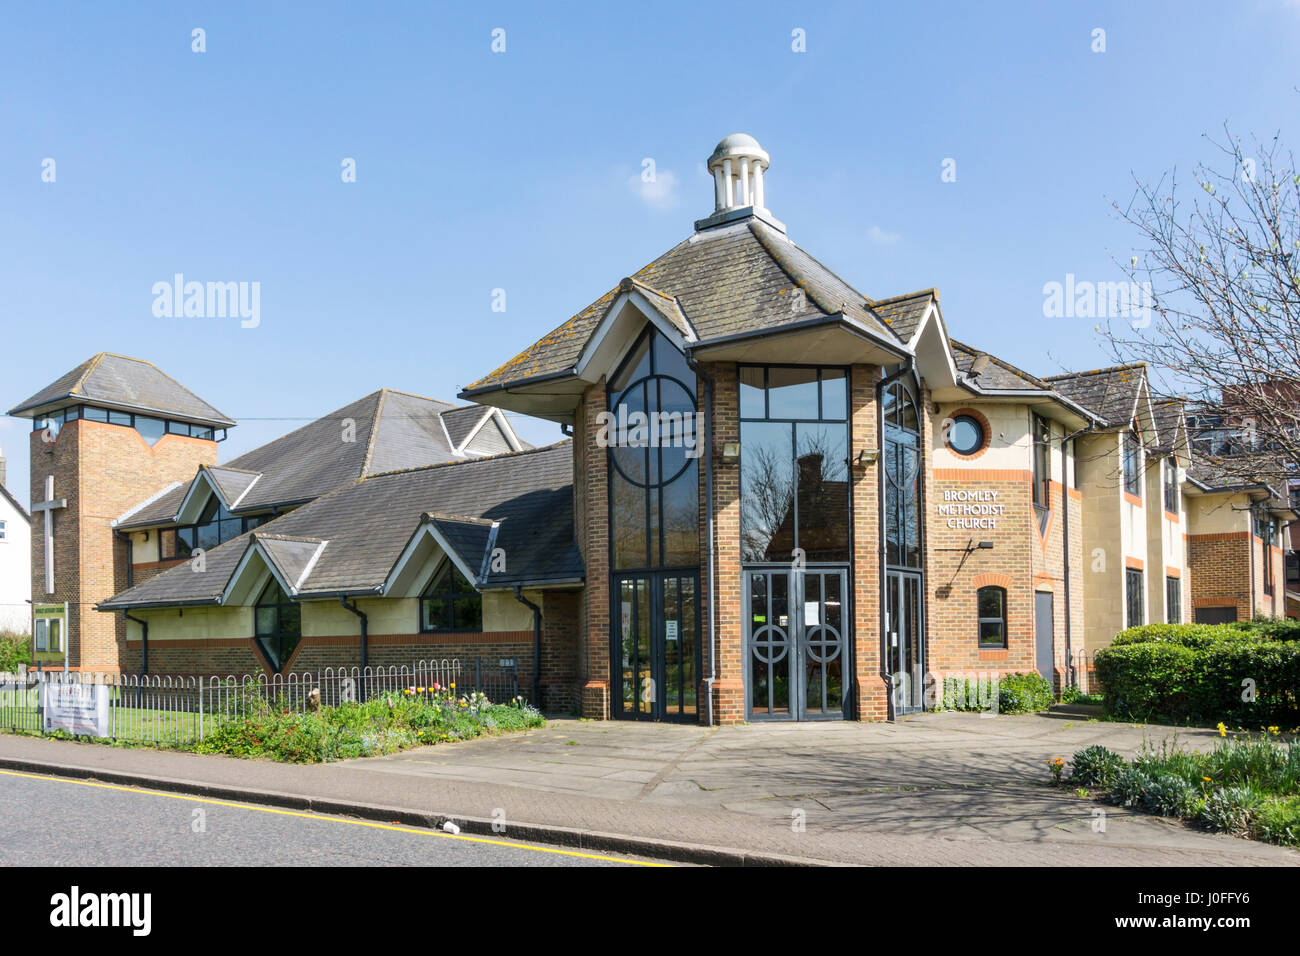 Bromley Methodist Church in South London. - Stock Image